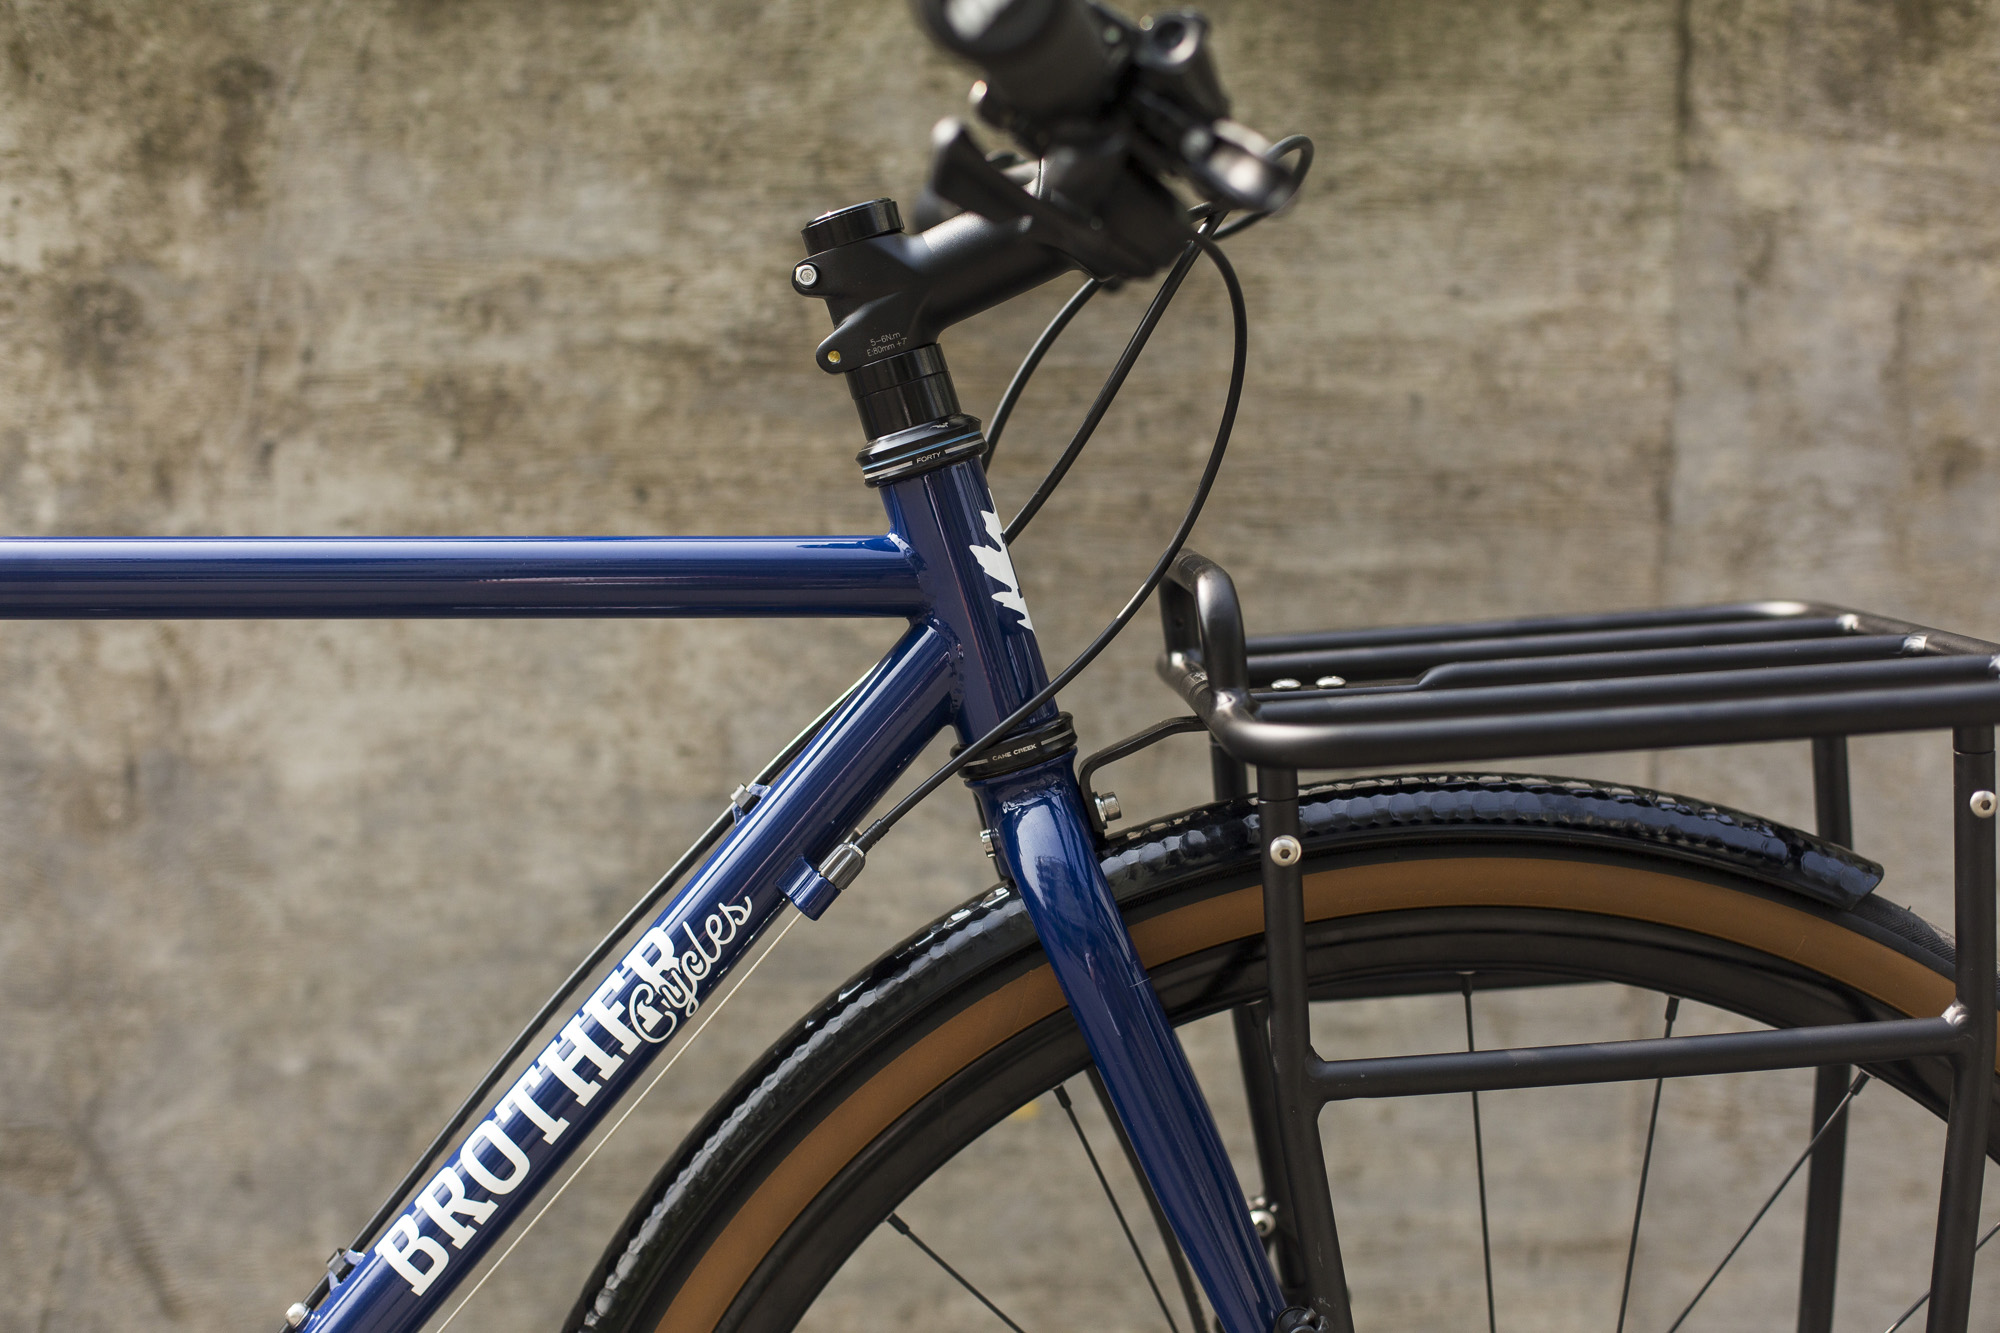 seabass-cycles-instore-bikes-17-april-2019-brother-cycles-kepler-disc-custom-build-midnight-blue-5071.jpg